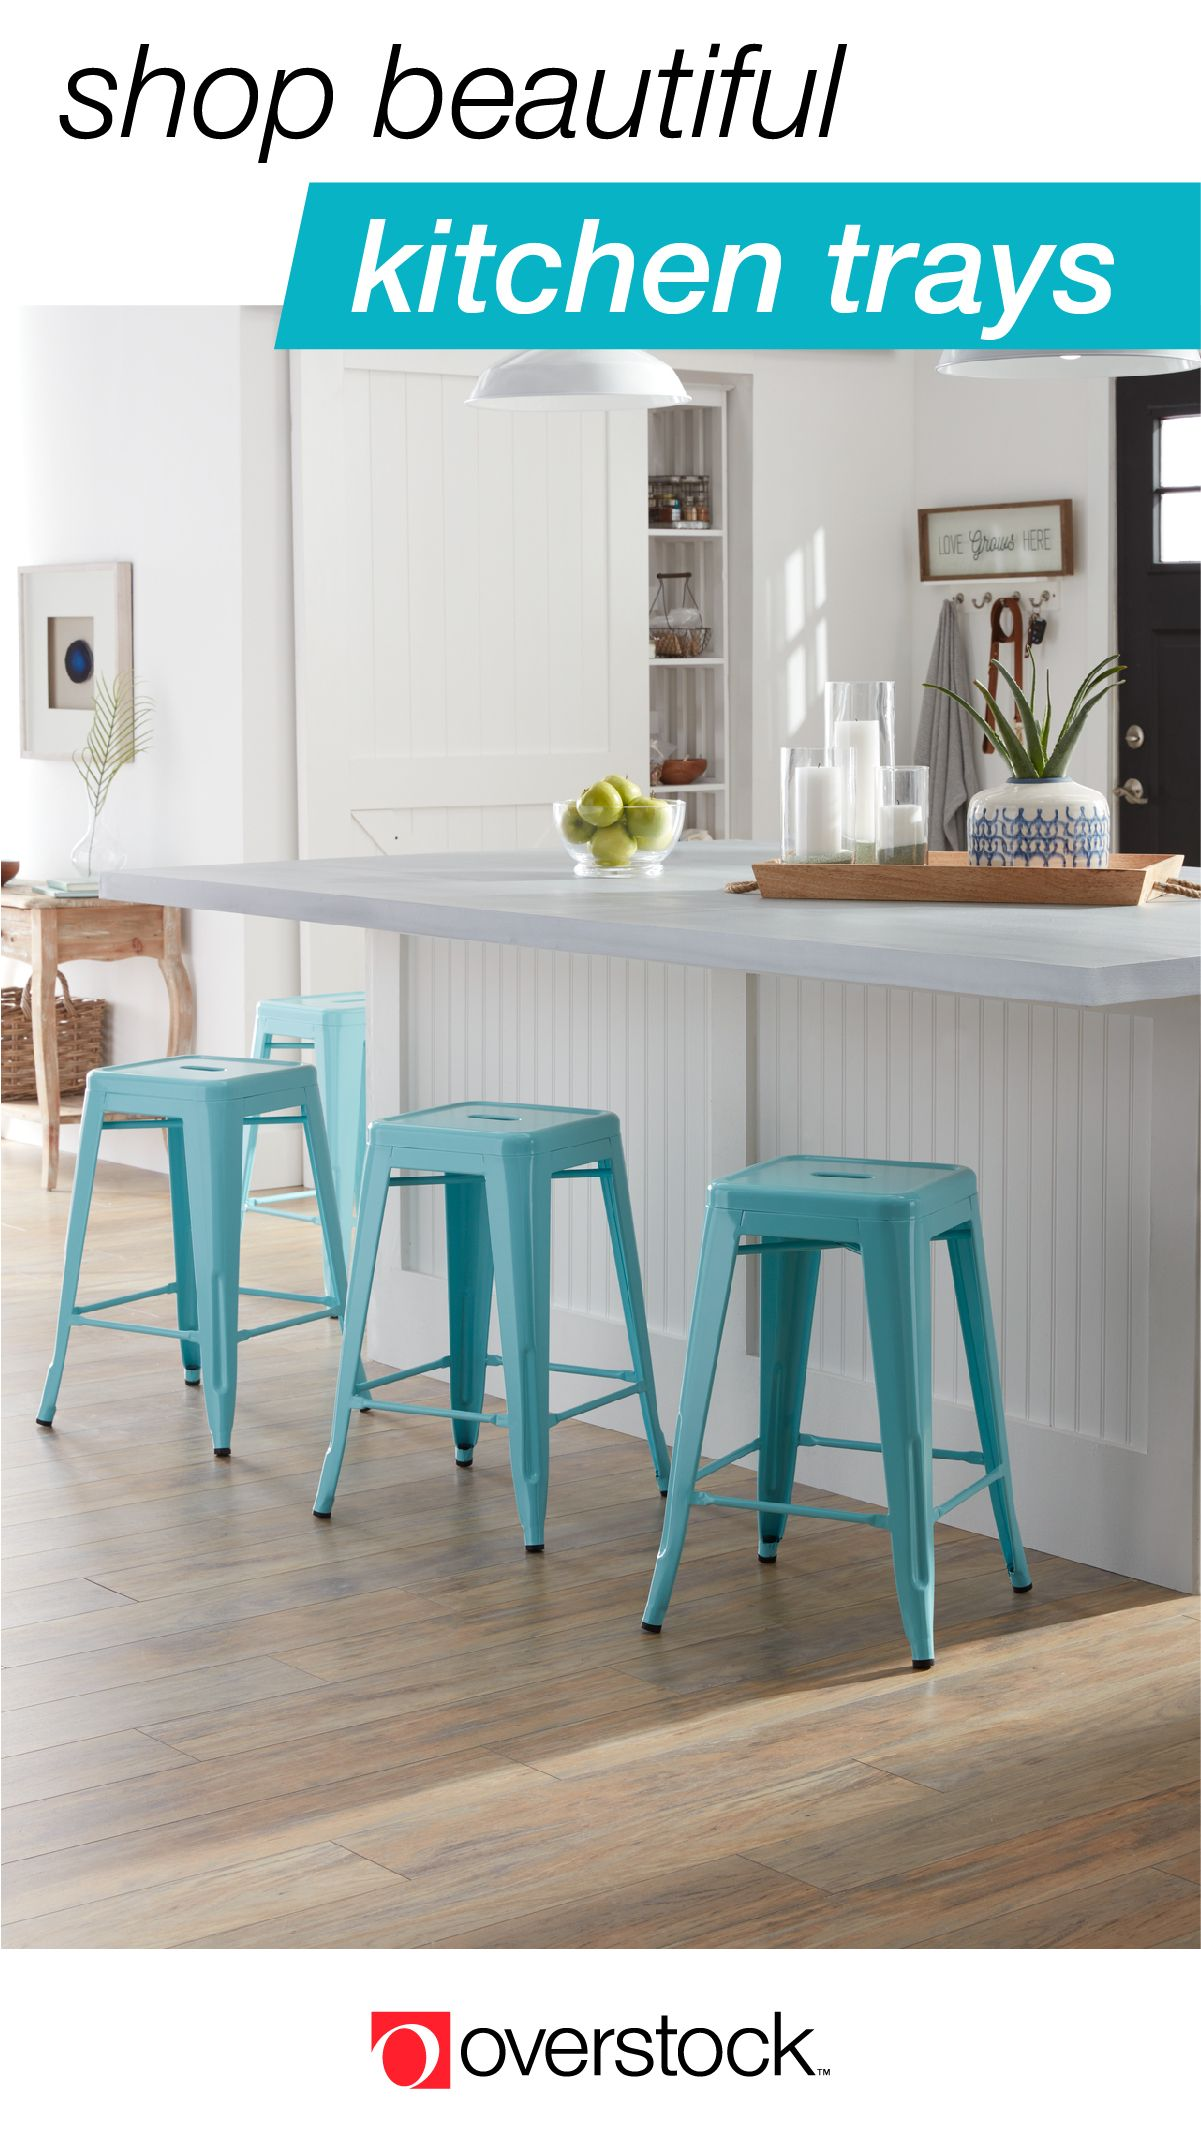 Bring the kitchen of your dreams to life at Overstock.com. Our ...